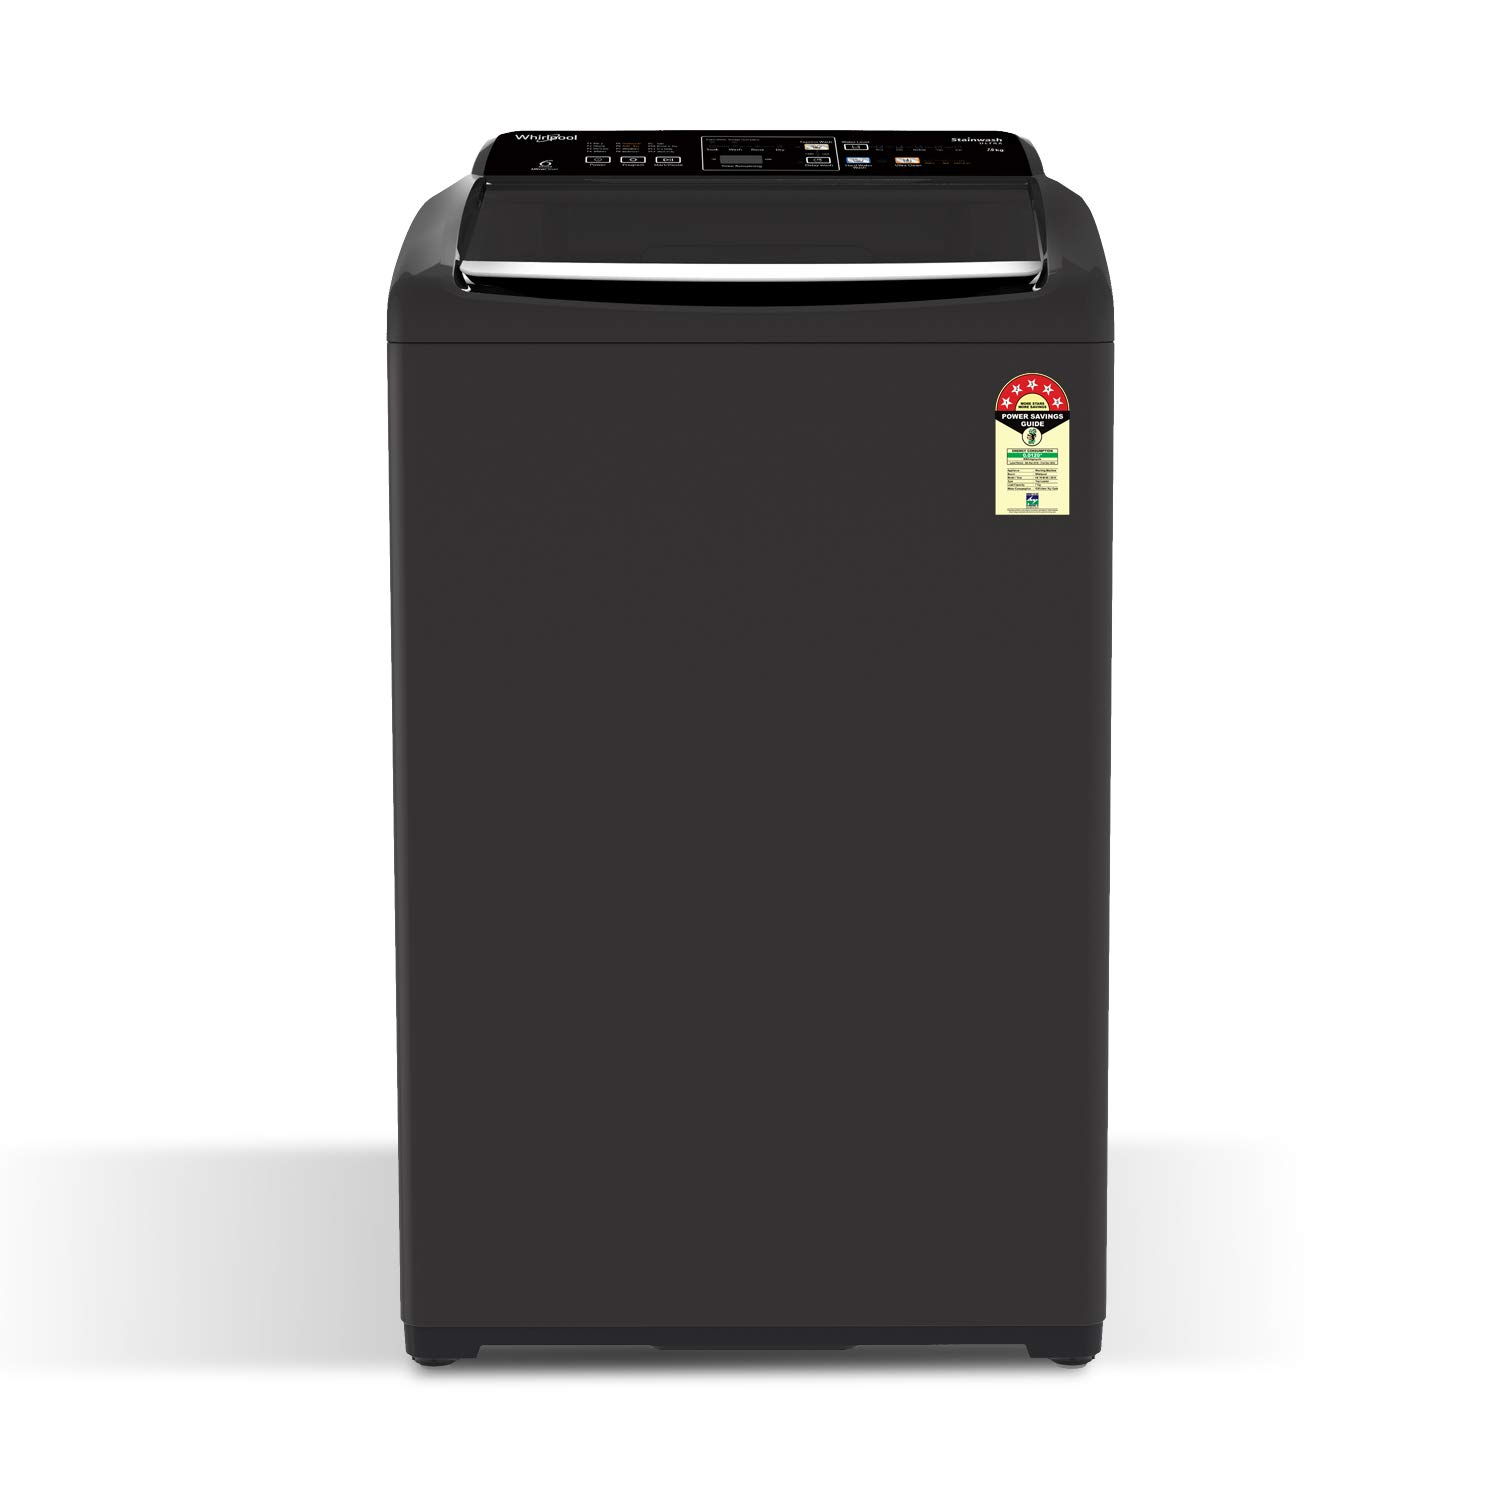 Whirlpool 7 kg 5 Star Fully-Automatic Top Loading Washing Machine with In-Built Heater